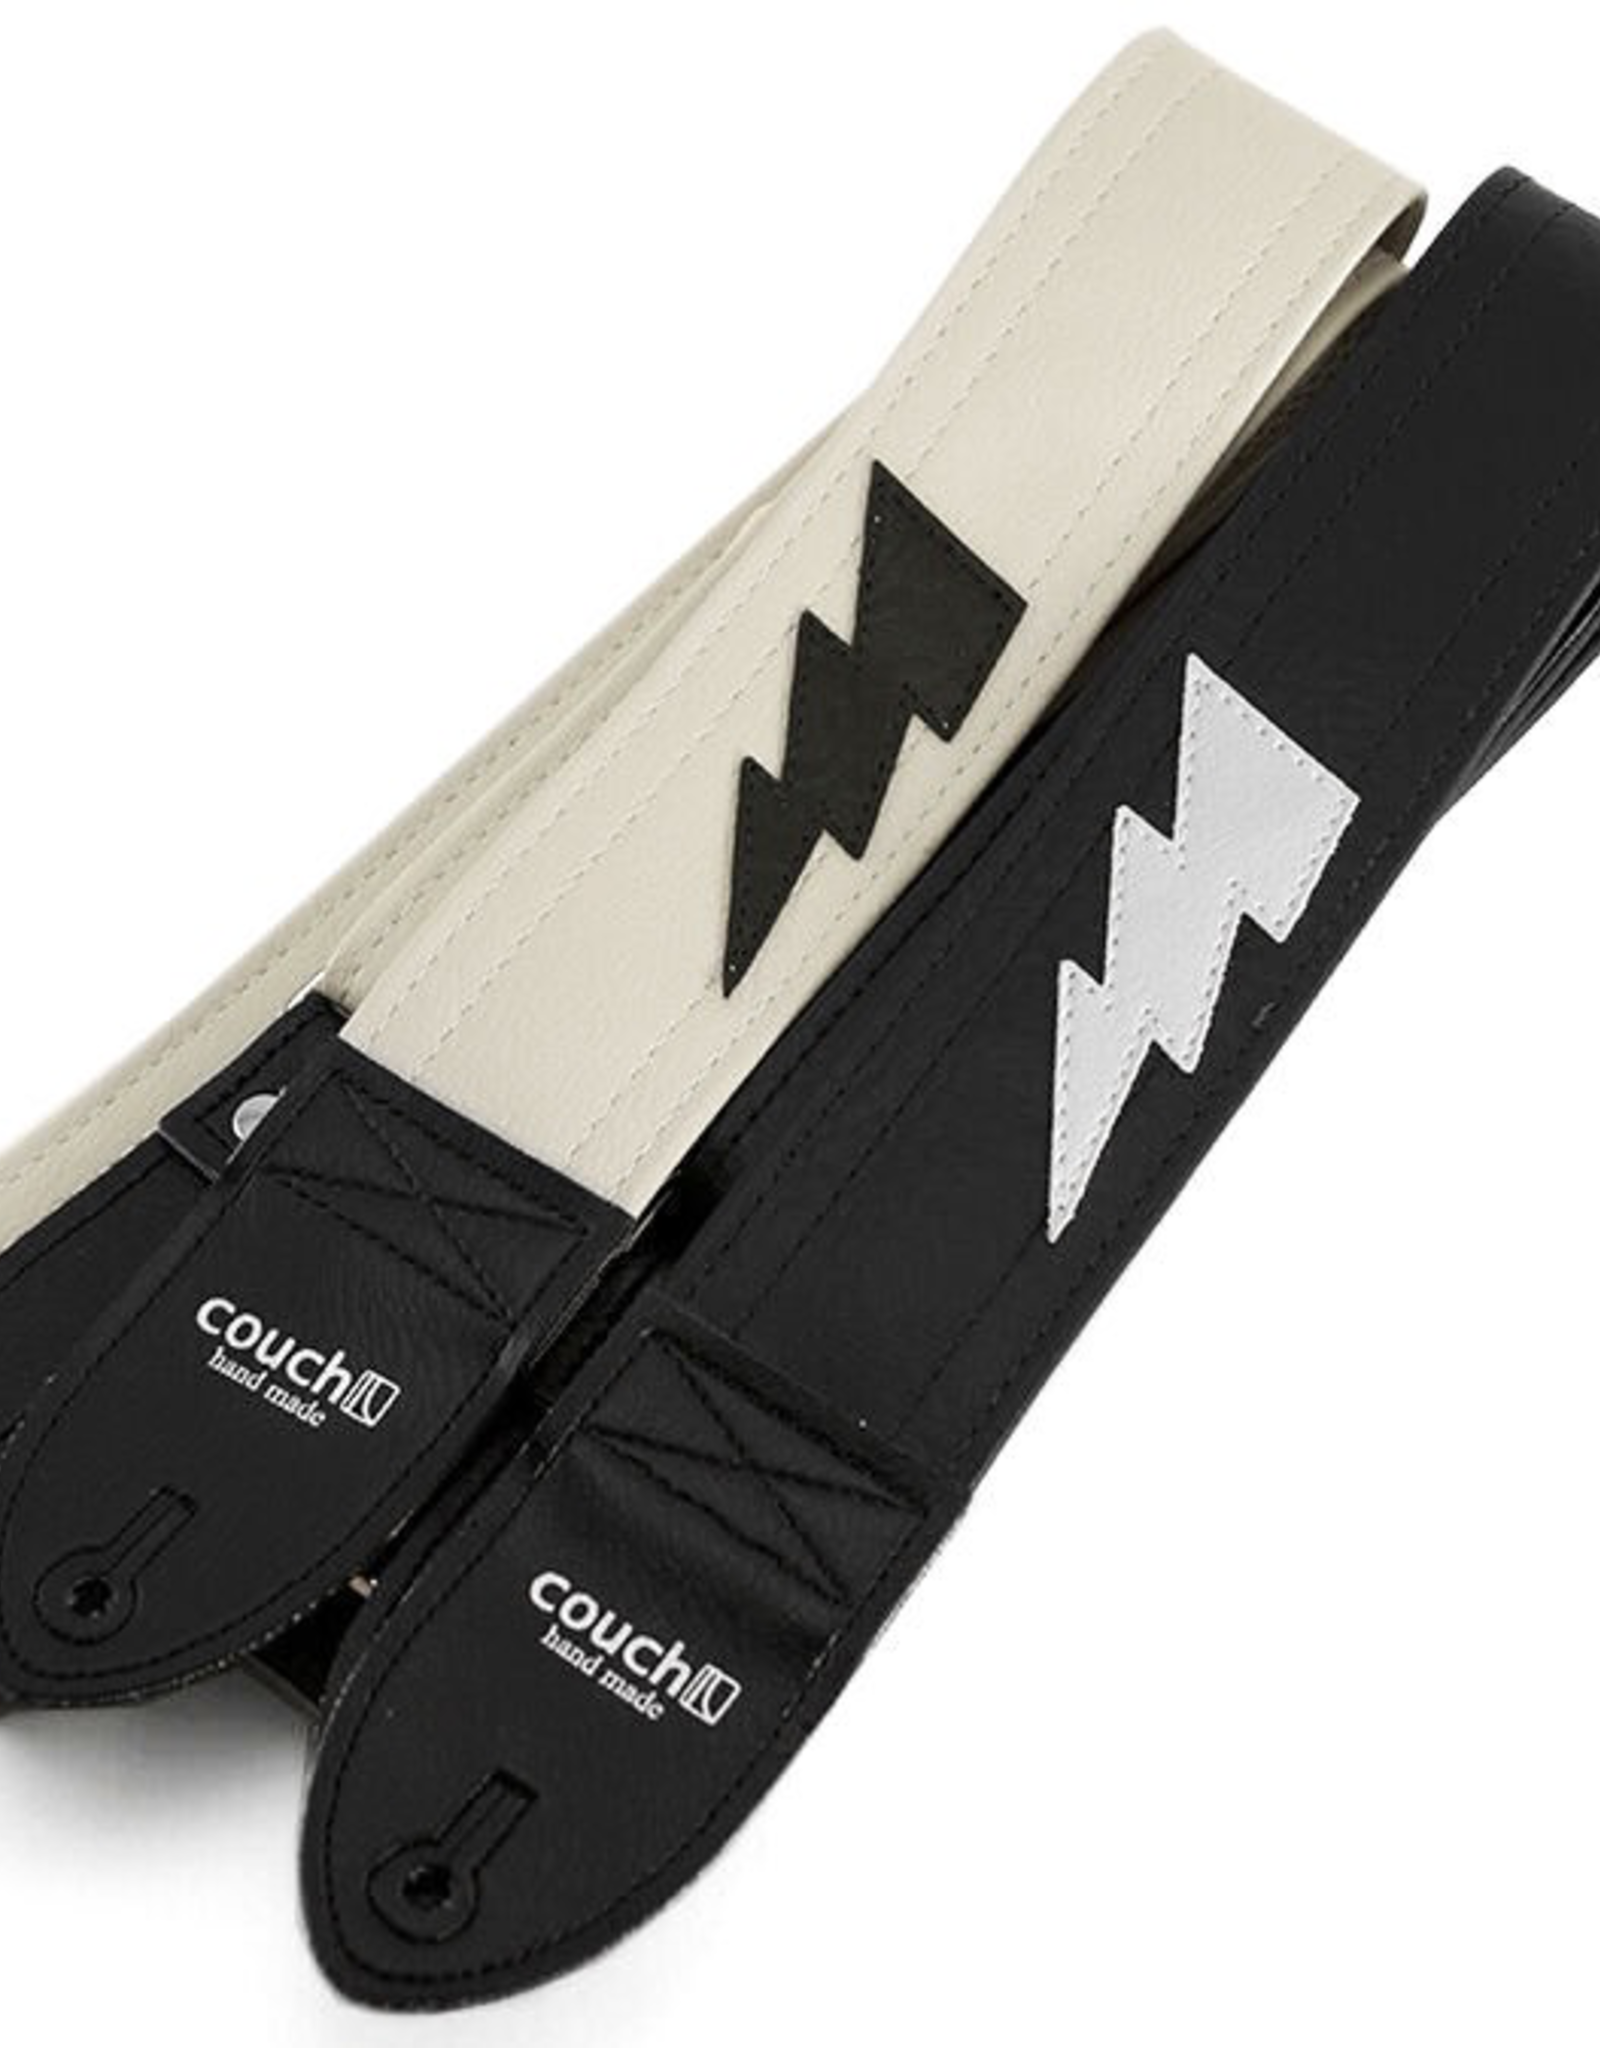 Couch Straps Couch Straps The Lightning Bolt Strap - White w/ Black Bolt